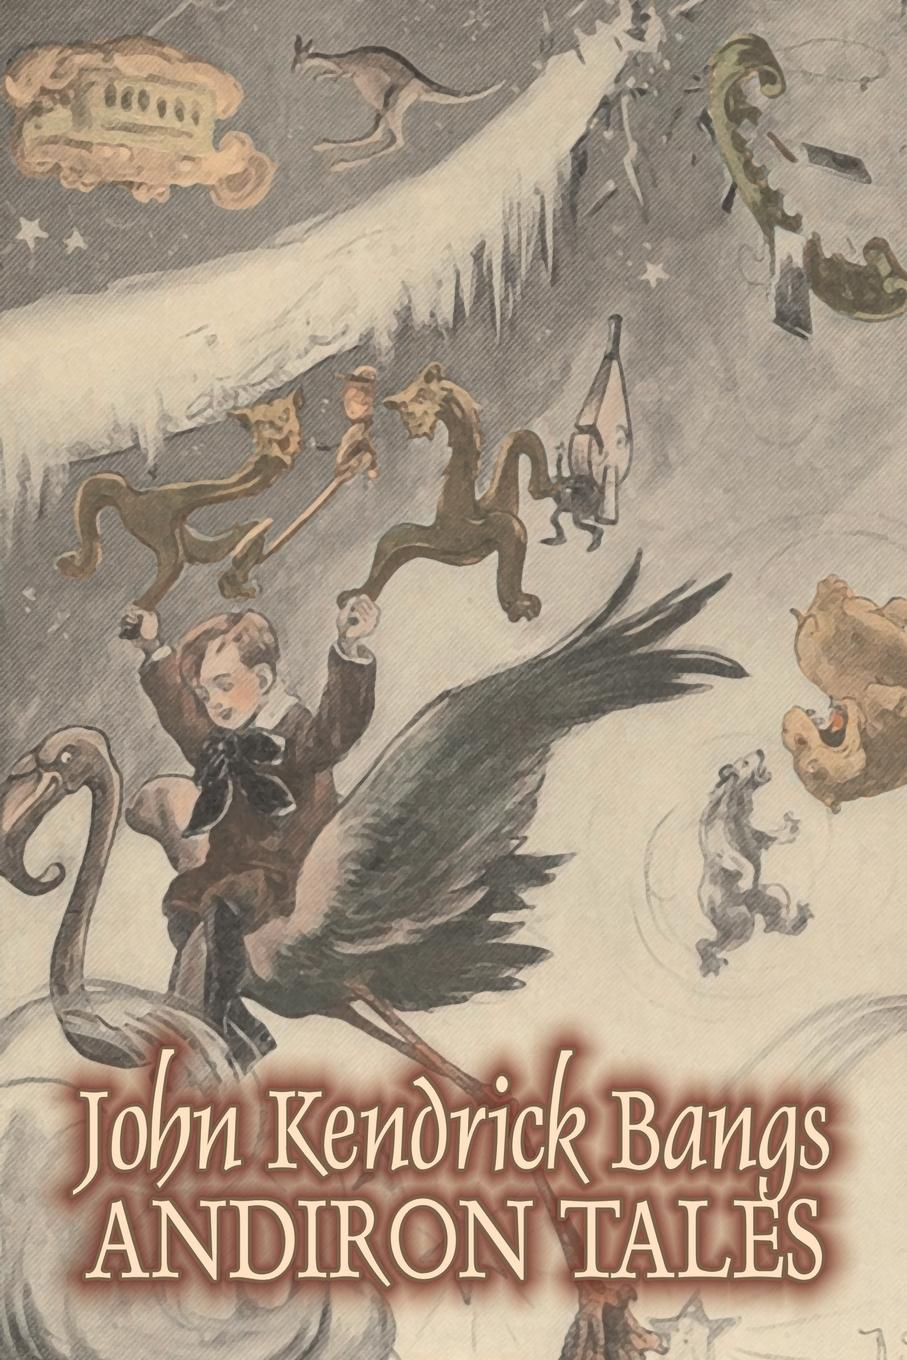 John Kendrick Bangs Andiron Tales by John Kendrick Bangs, Fiction, Fantasy, Fairy Tales, Folk Tales, Legends & Mythology